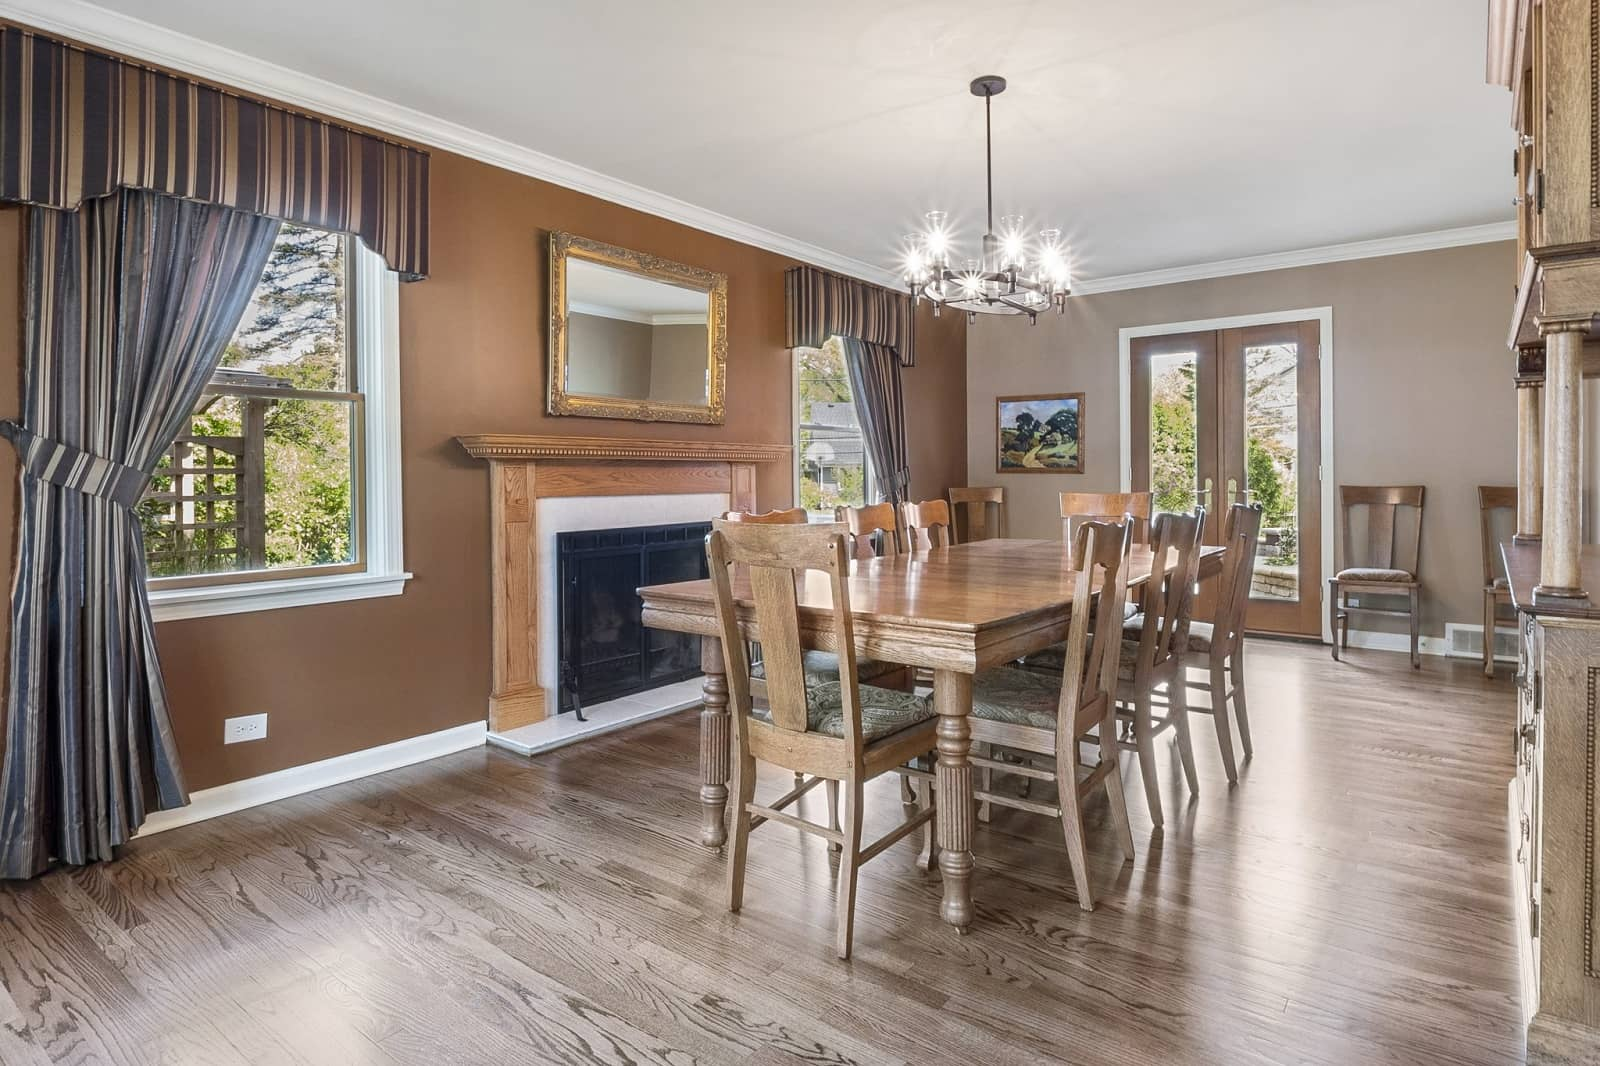 Real Estate Photography in Naperville - IL - USA - Dining Area View